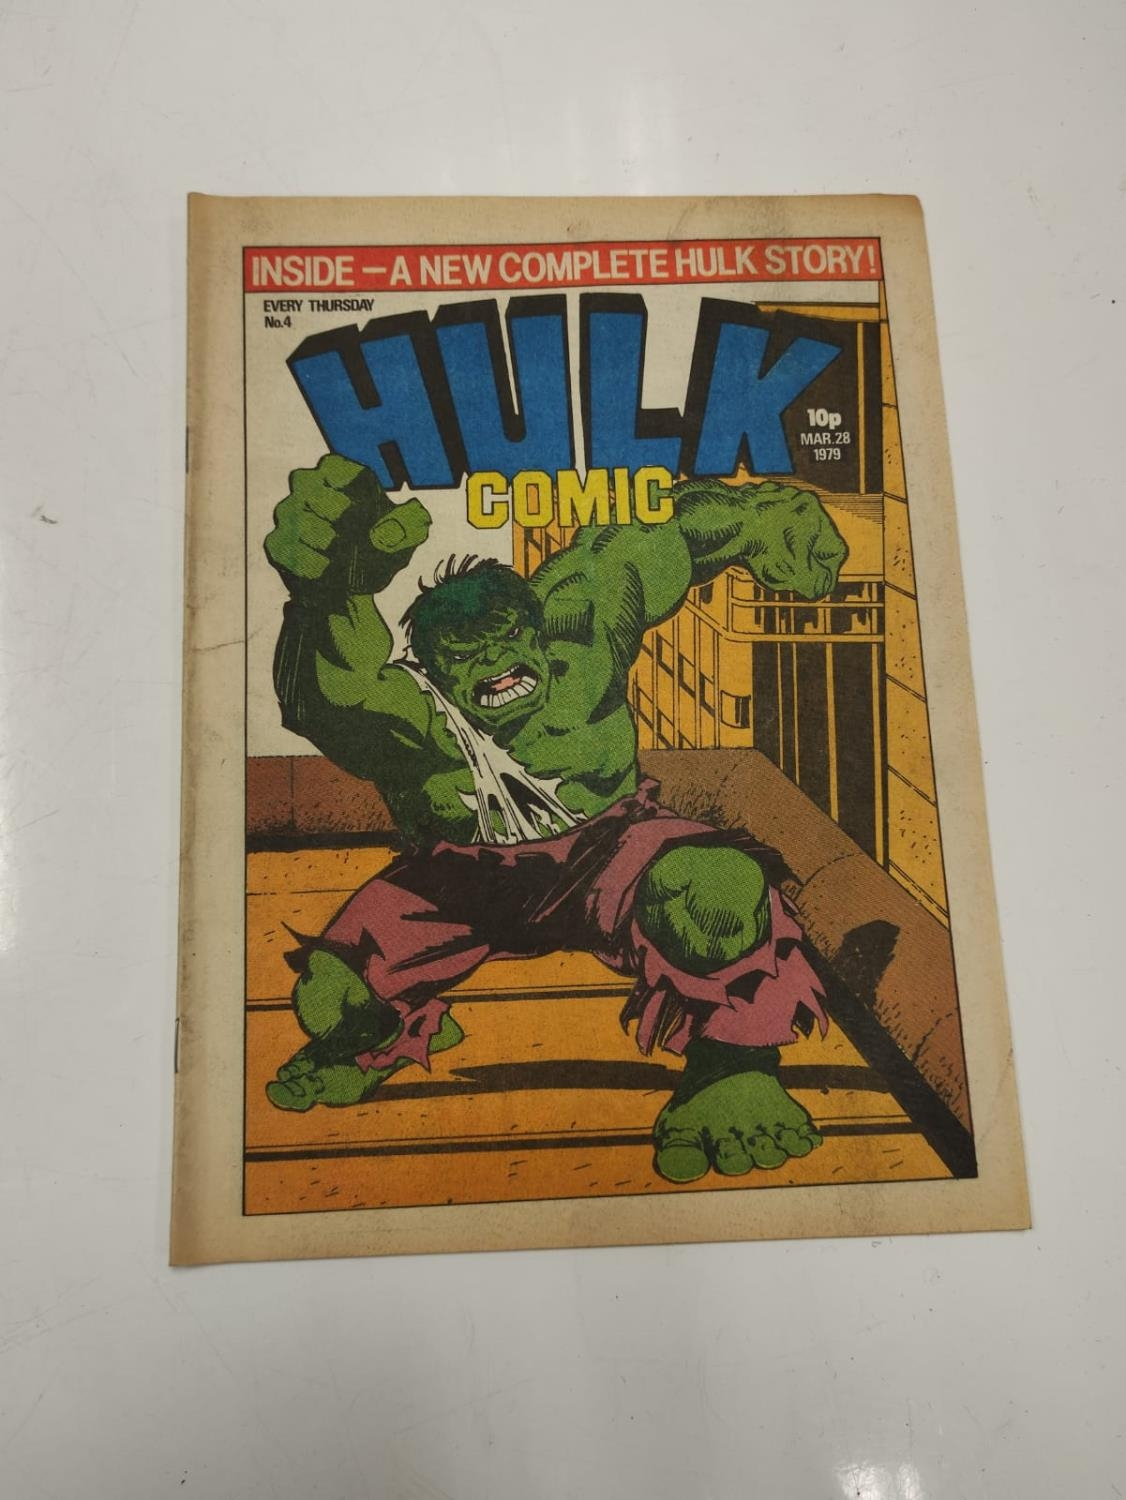 20 editions of mixed Vintage Marvel Comics. - Image 51 of 56